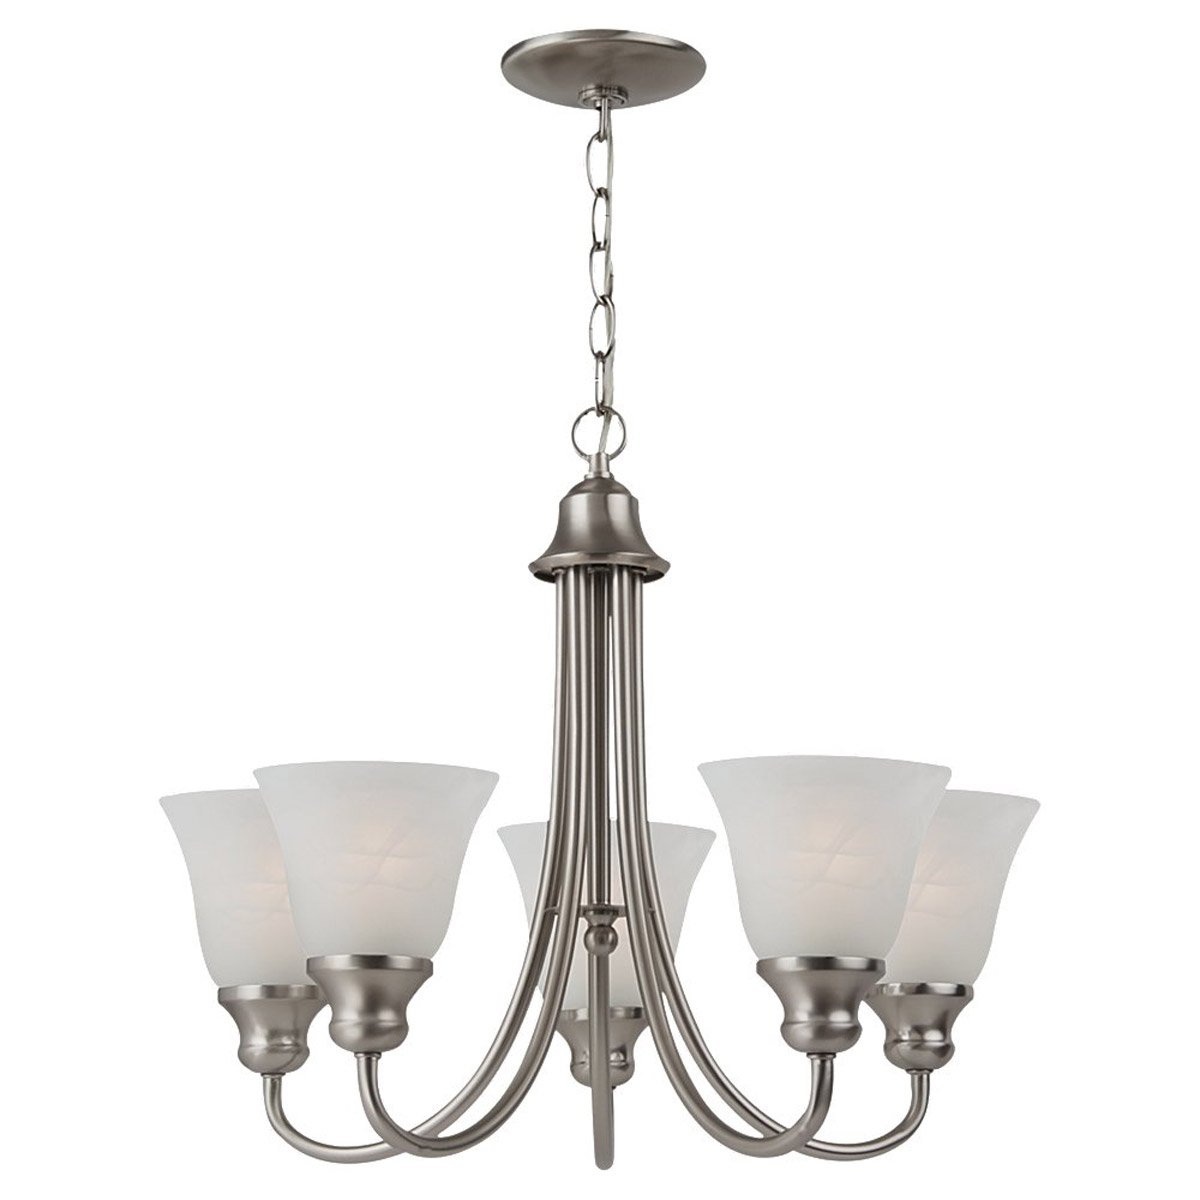 Sea Gull Lighting Windgate 5 Light Chandelier in Brushed Nickel 35940BLE-962